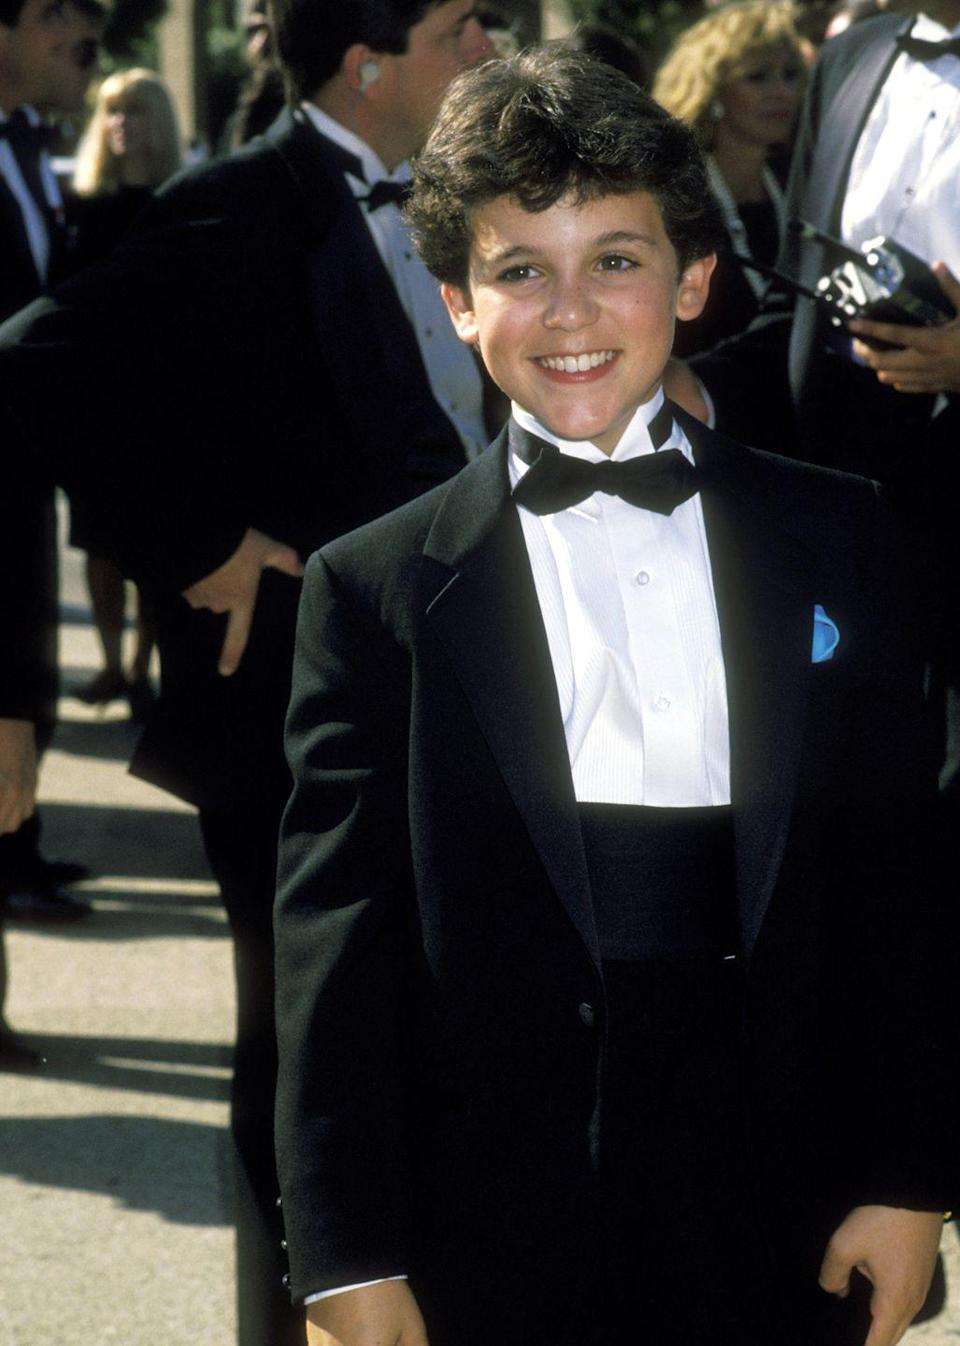 """<p>The young star of """"Little Monsters"""" and """"The Wizard"""" handsomely wore a tuxedo for his red carpet appearance.</p>"""